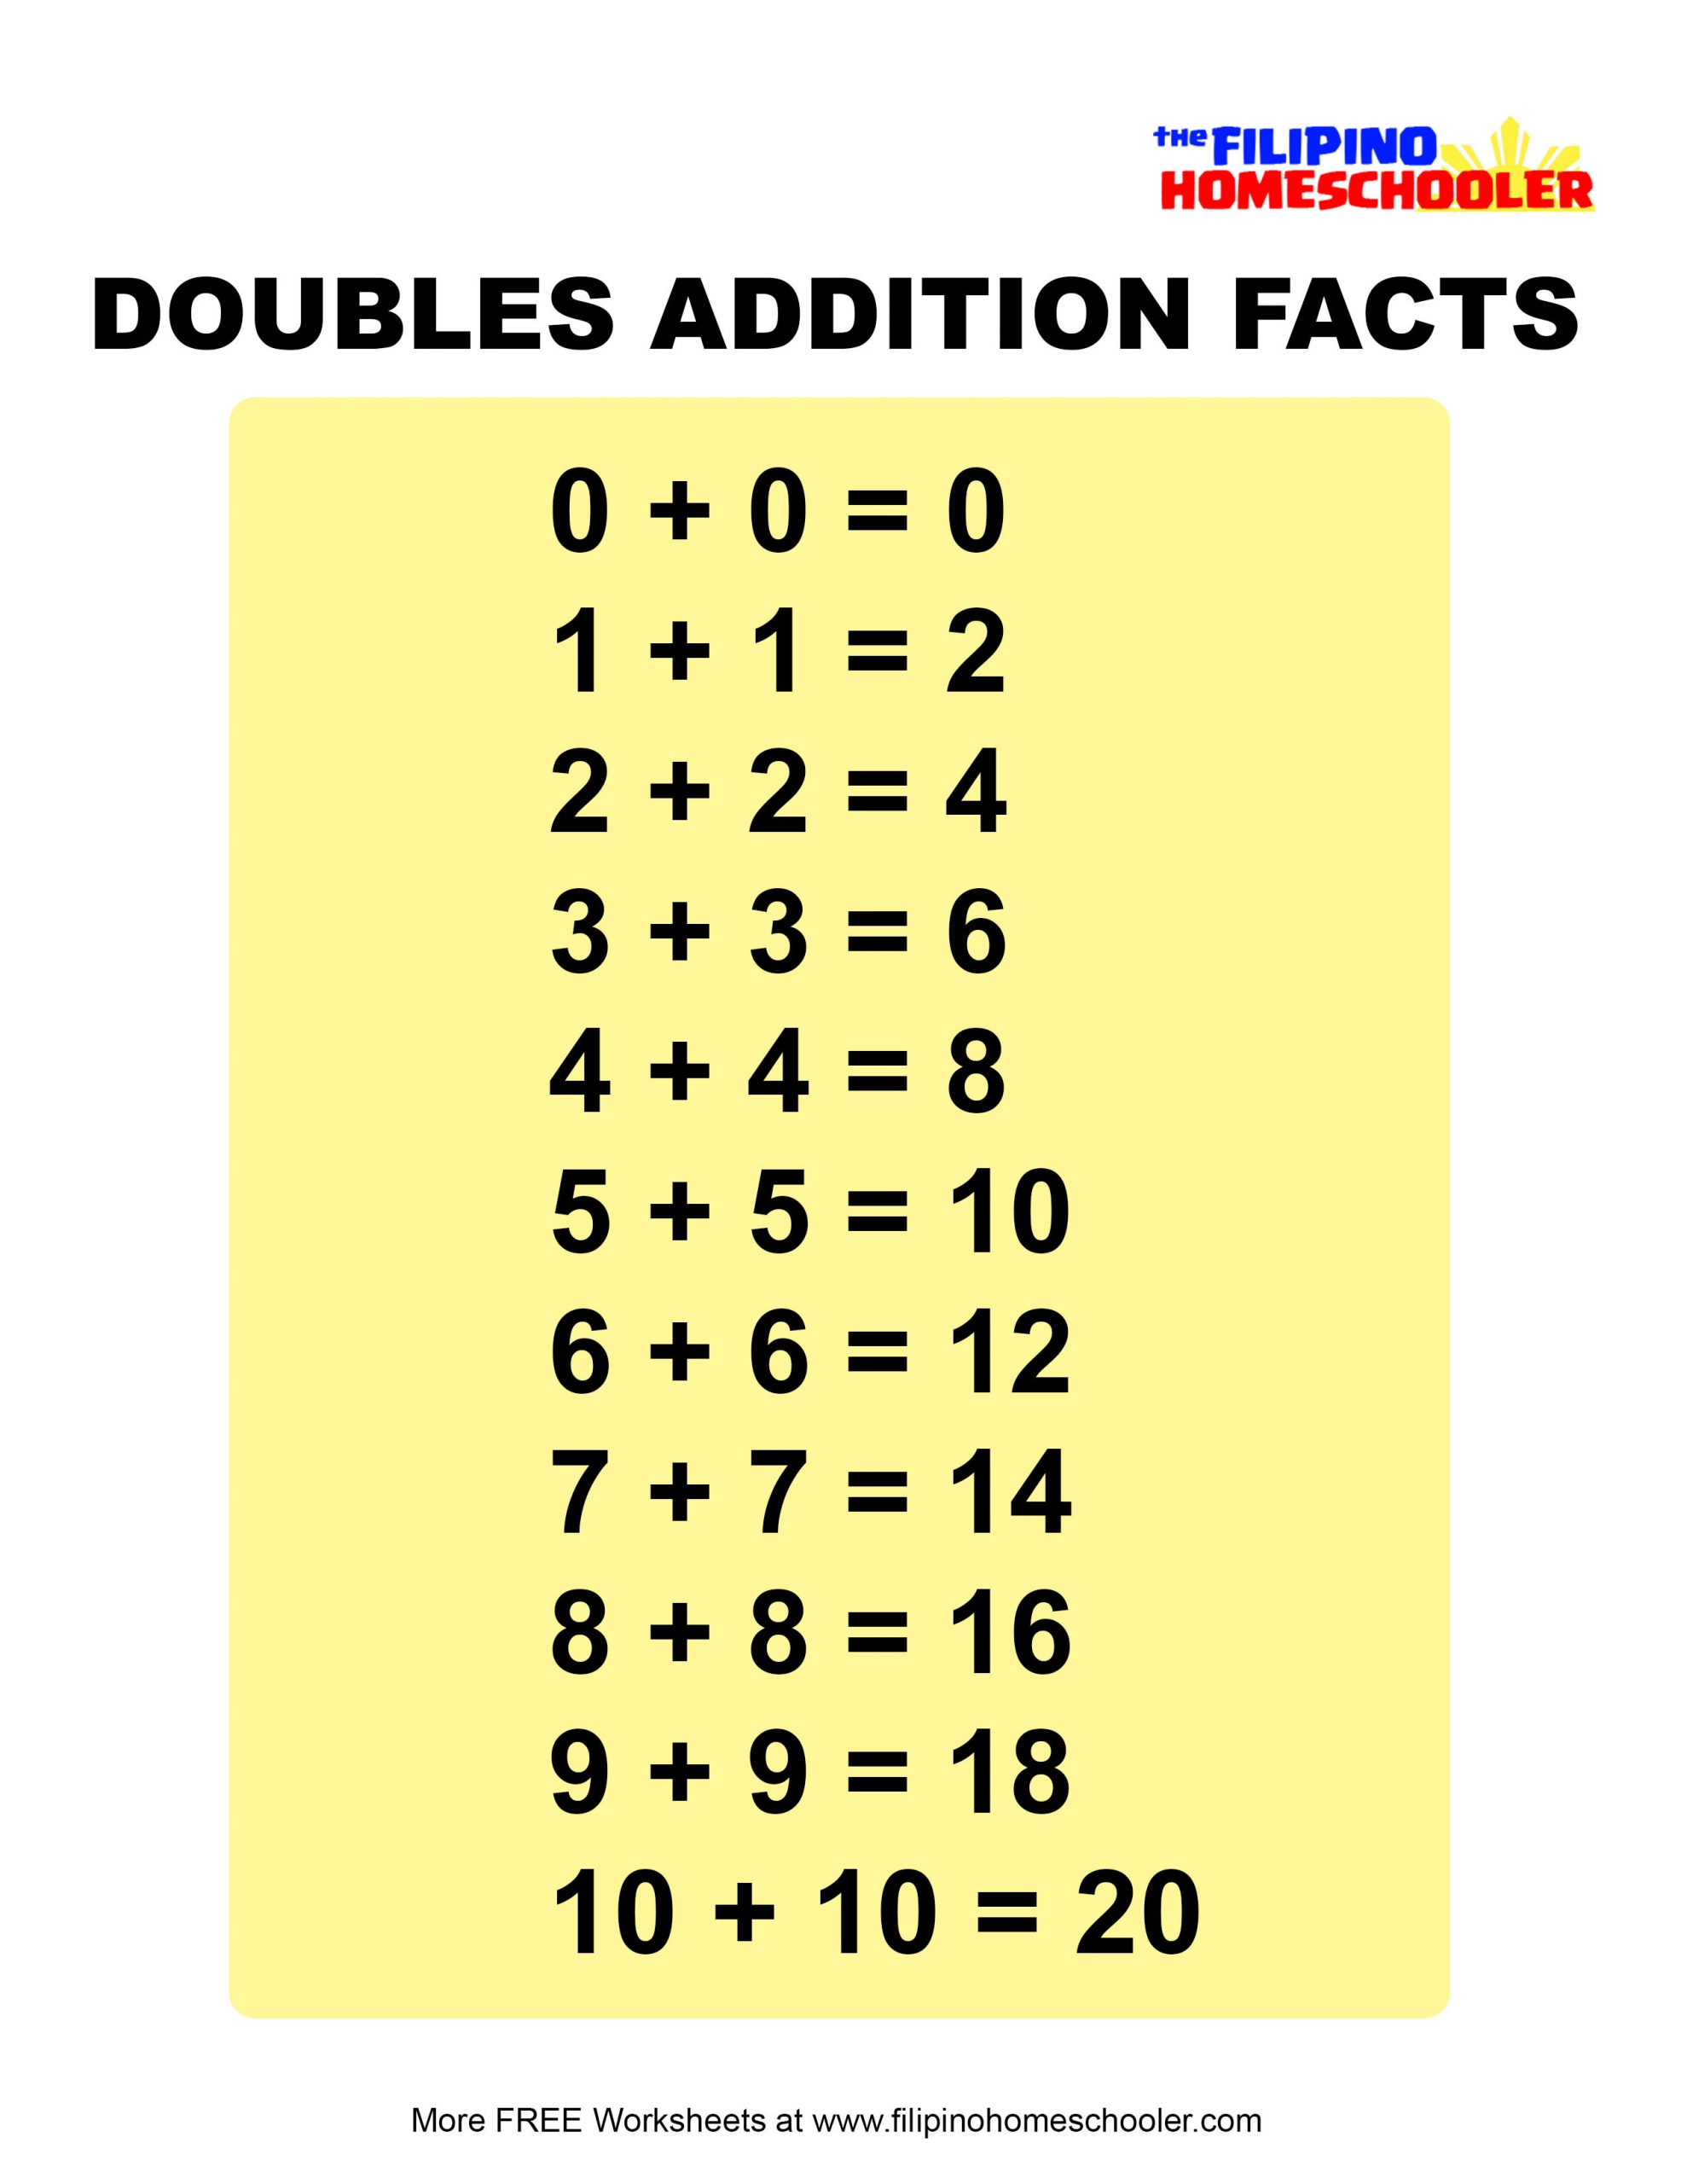 Doubles Math Fact Worksheets Adding Doubles Worksheets and Teaching Strategies — the